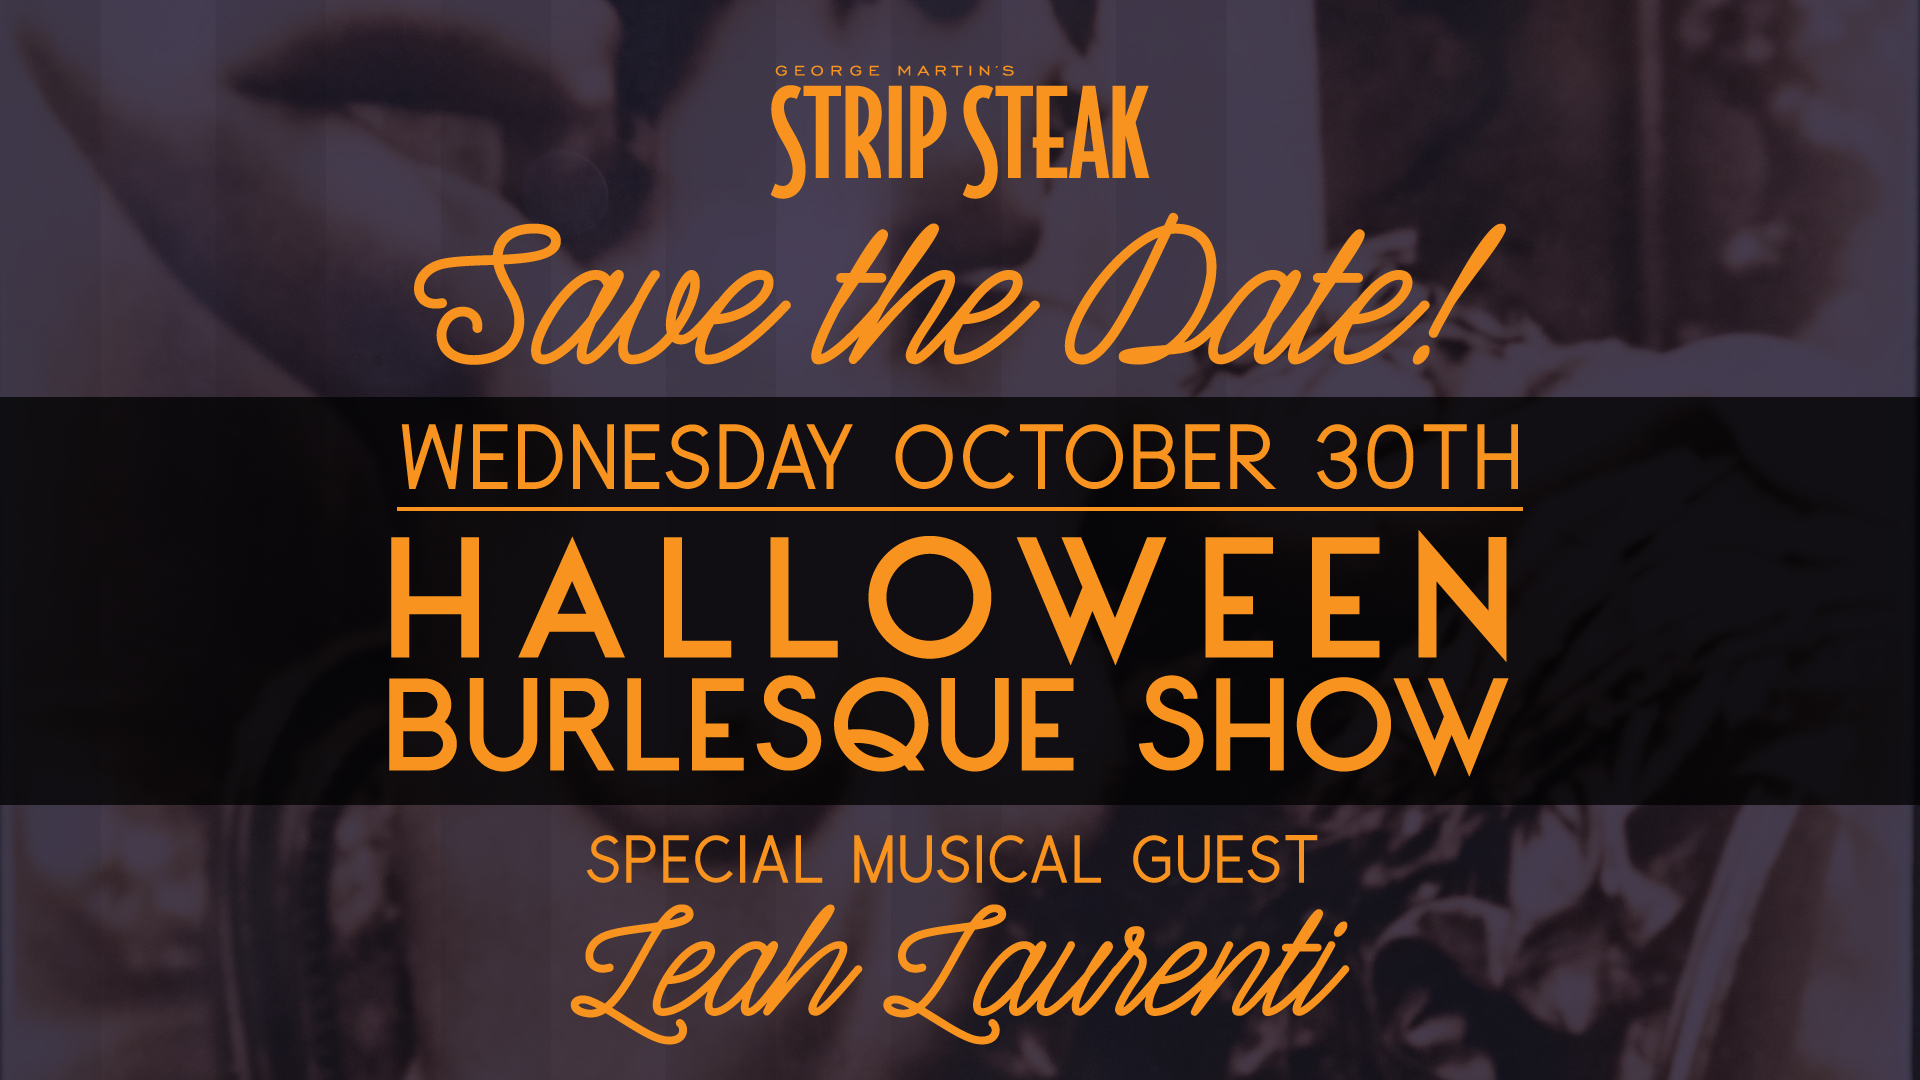 Flyer for Strip Steak's Halloween Burlesque Show, save the date, Wednesday, October 30th with special musical guest Leah Laurenti